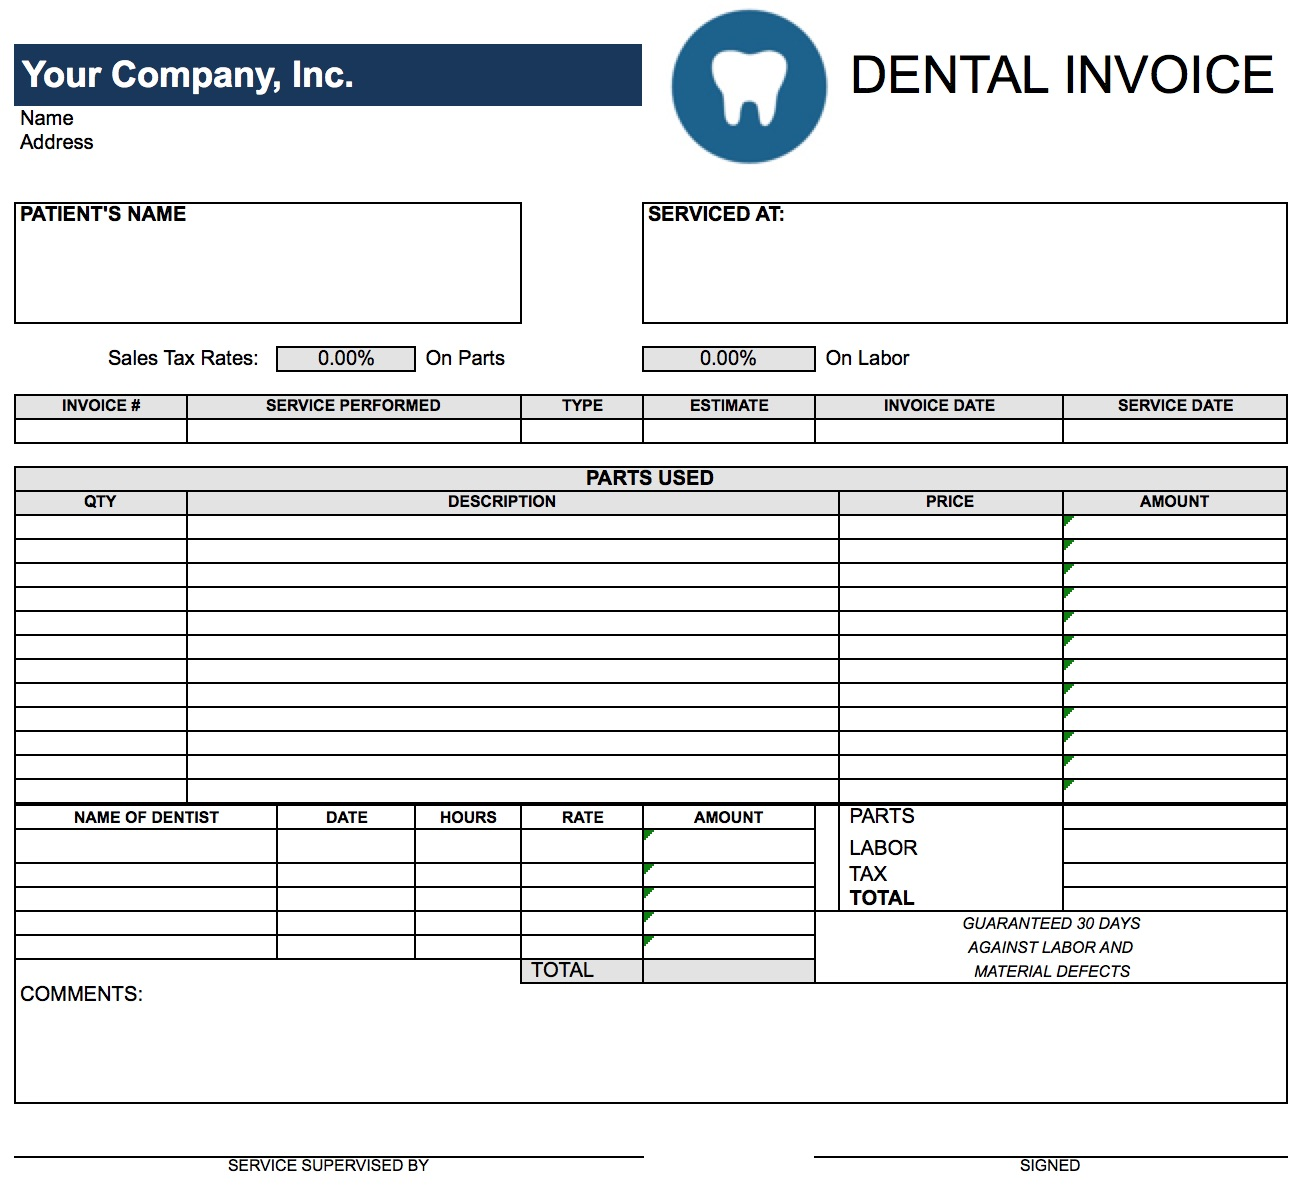 free dental invoice template | excel | pdf | word (.doc), Invoice templates